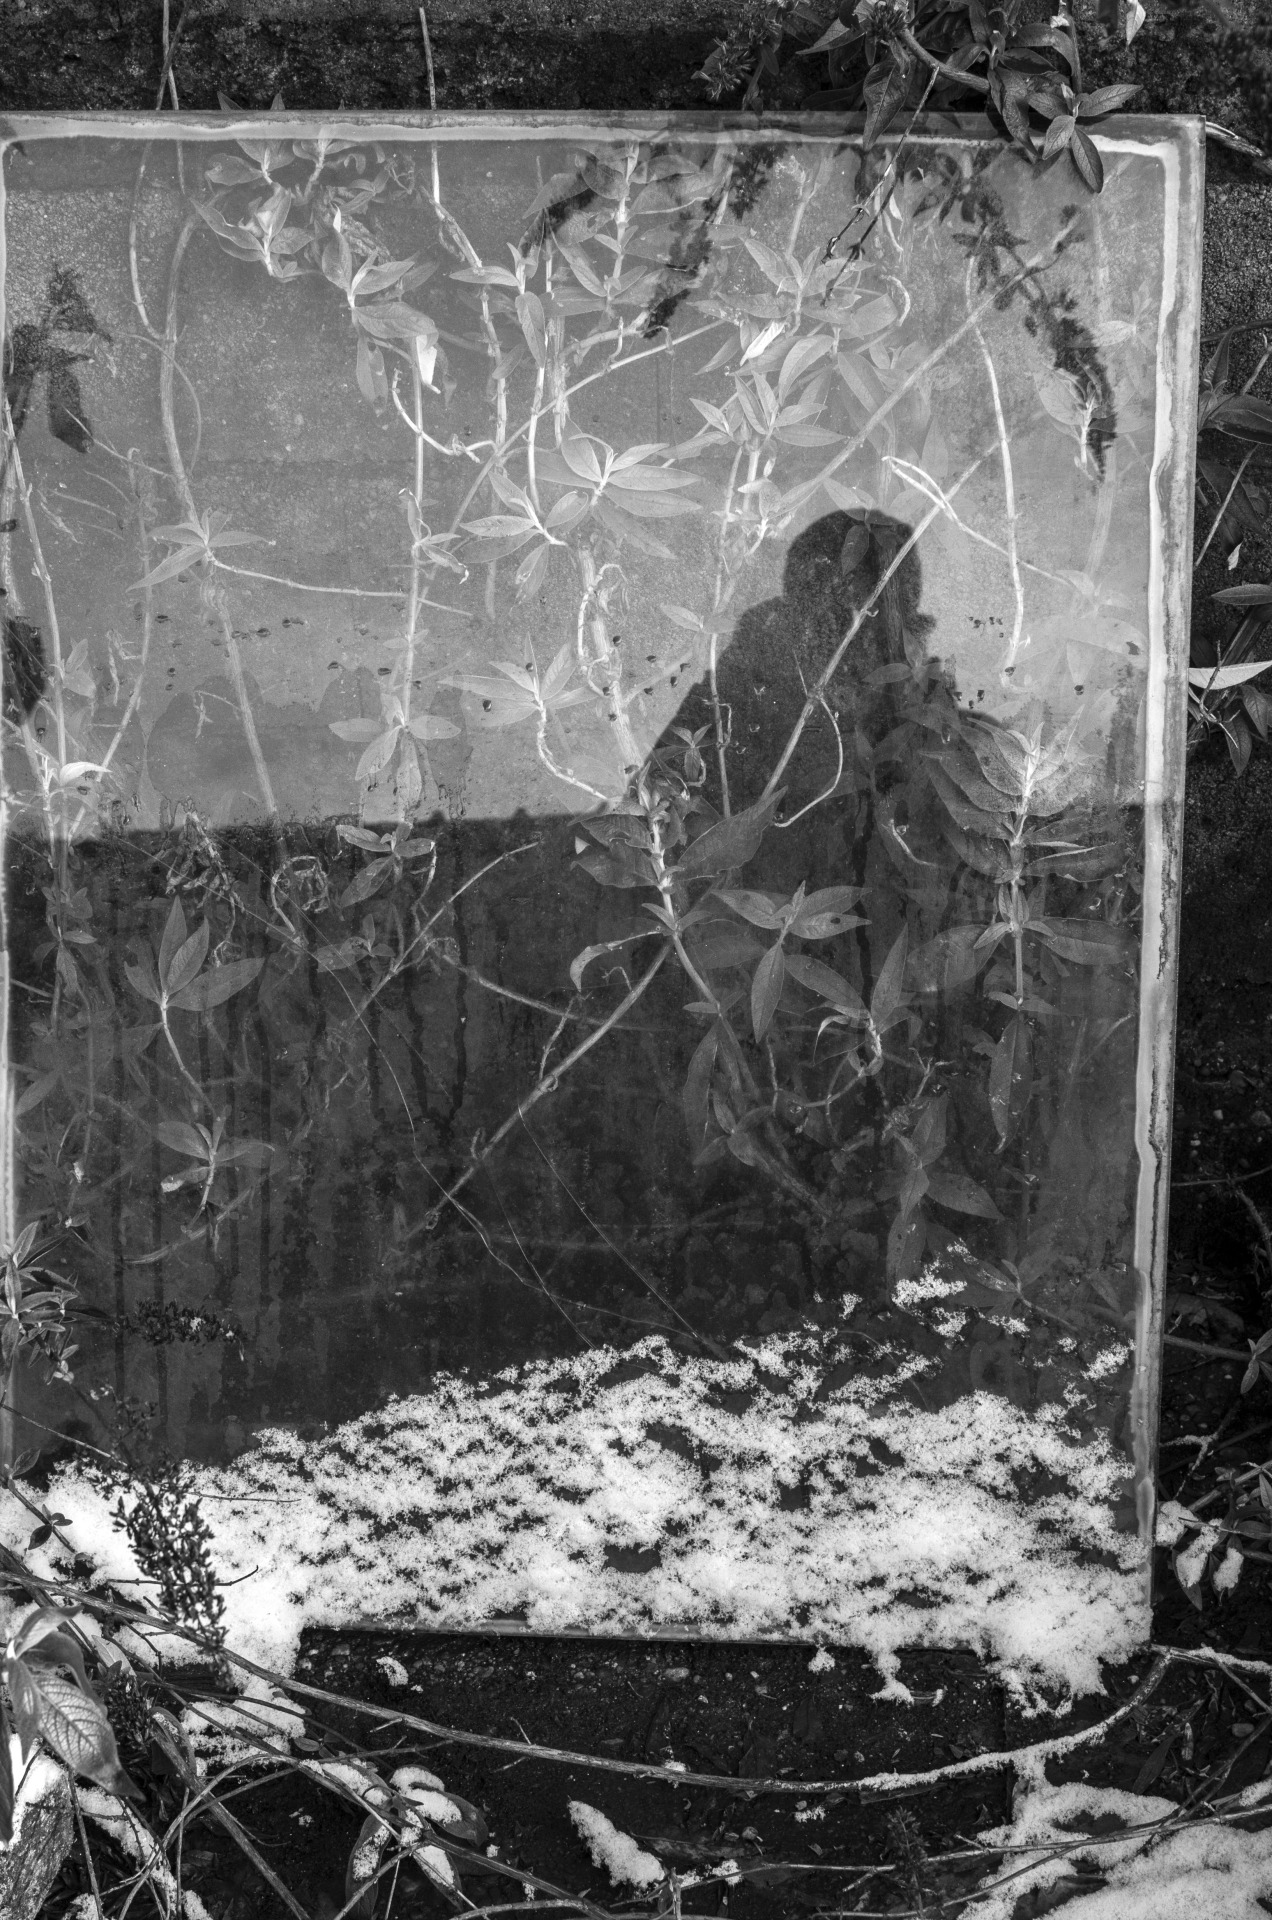 """Self portrait made of glass, leaves and snow"" April 2013. Thomas Simon"